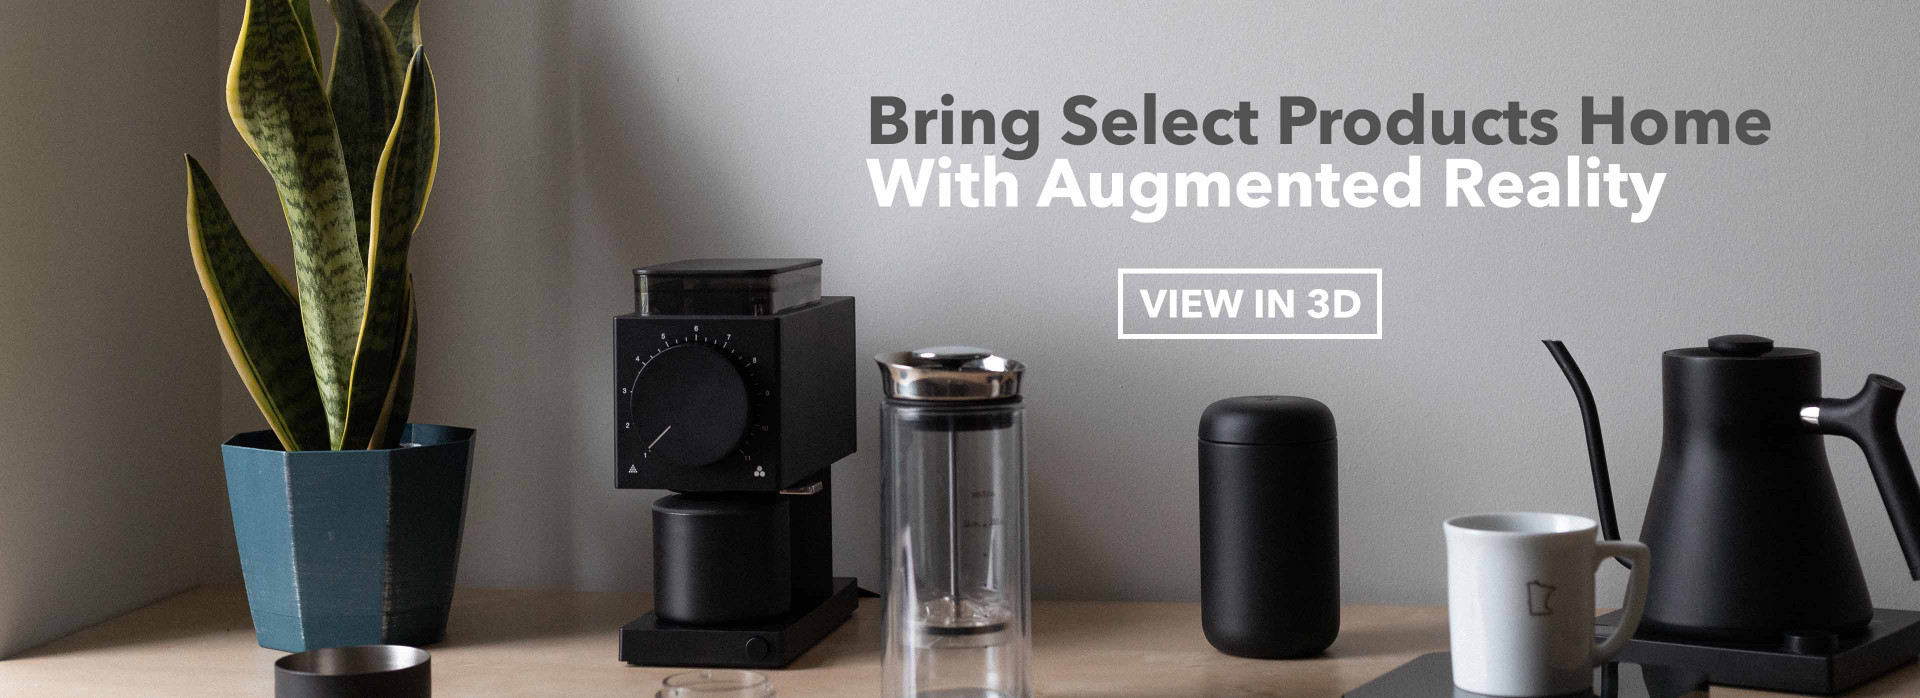 bring select products home with augmented reality, view in 3d